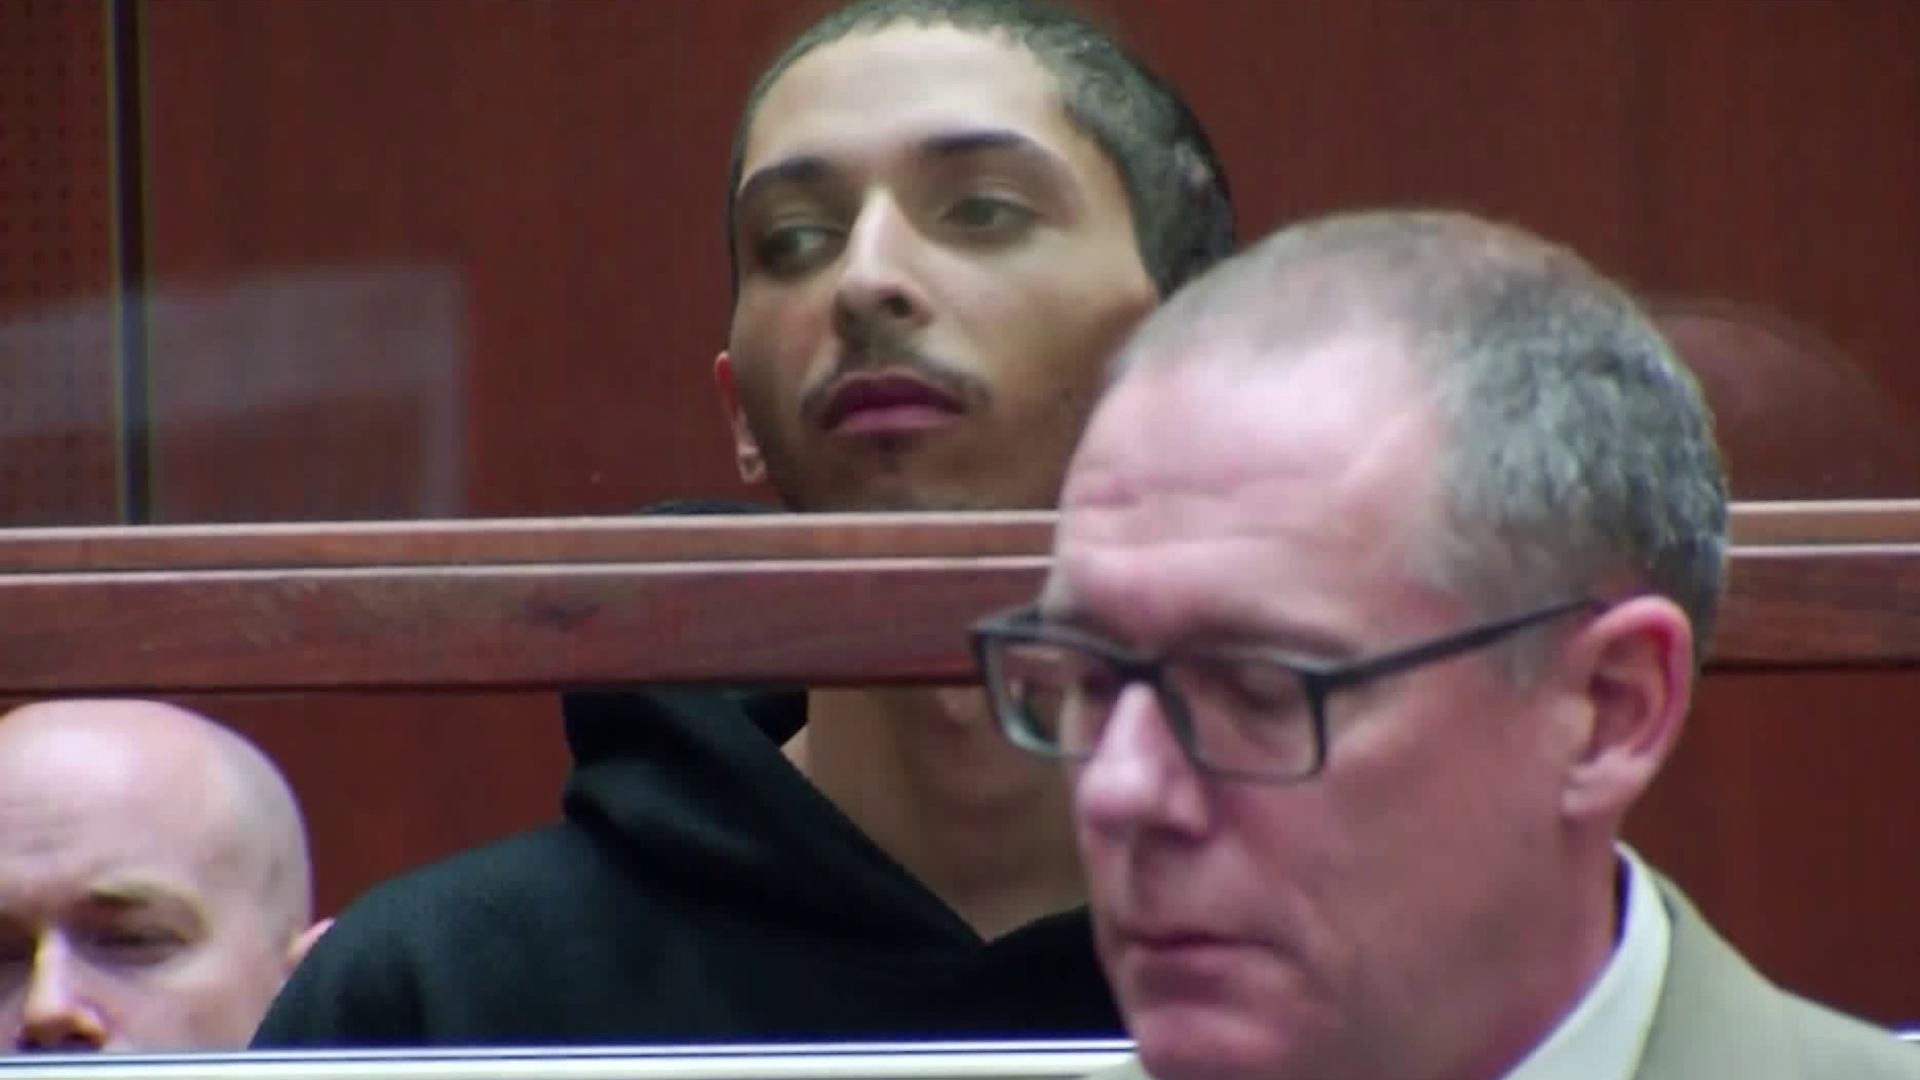 Tyler Barriss appears at an extradition hearing in Los Angeles on Jan. 3, 2018. (Credit: CNN)